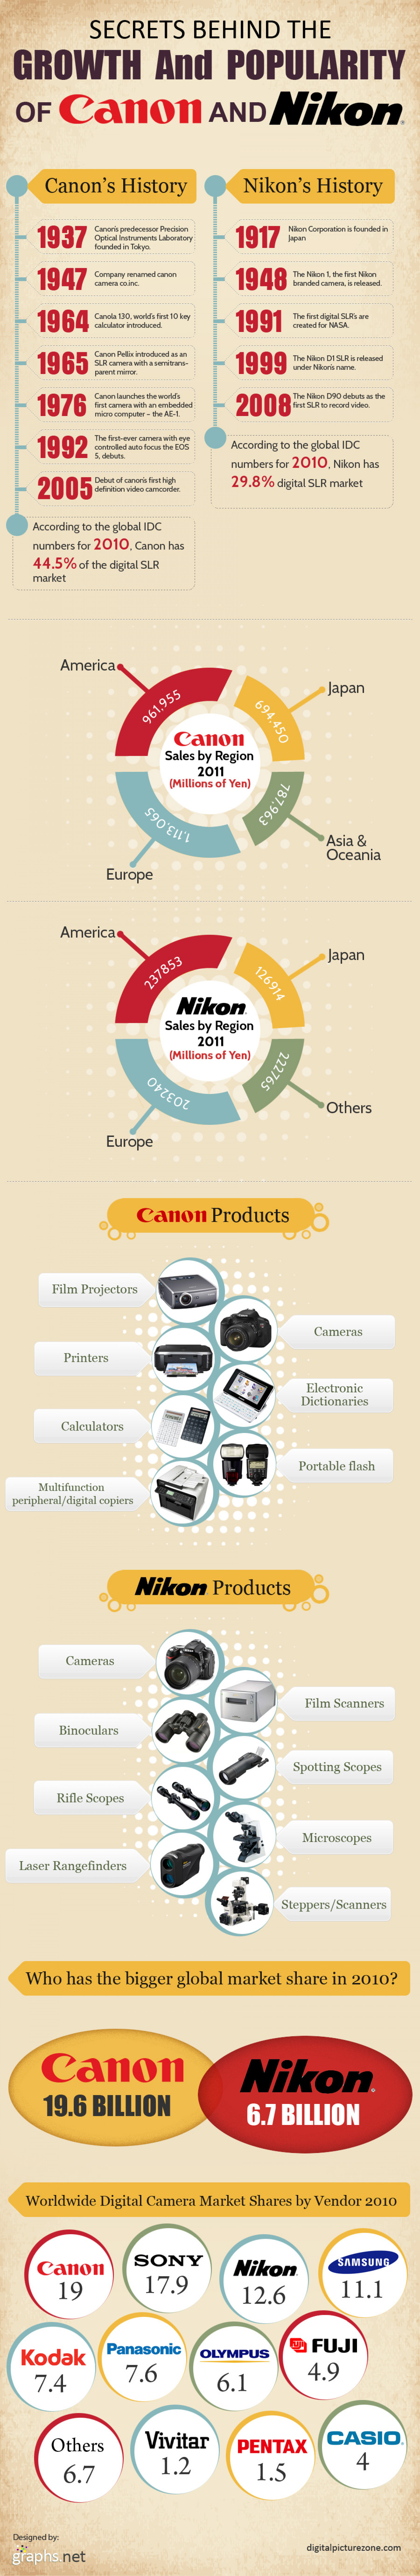 Secrets Behind the Growth and Popularity of Canon and Nikon Infographic